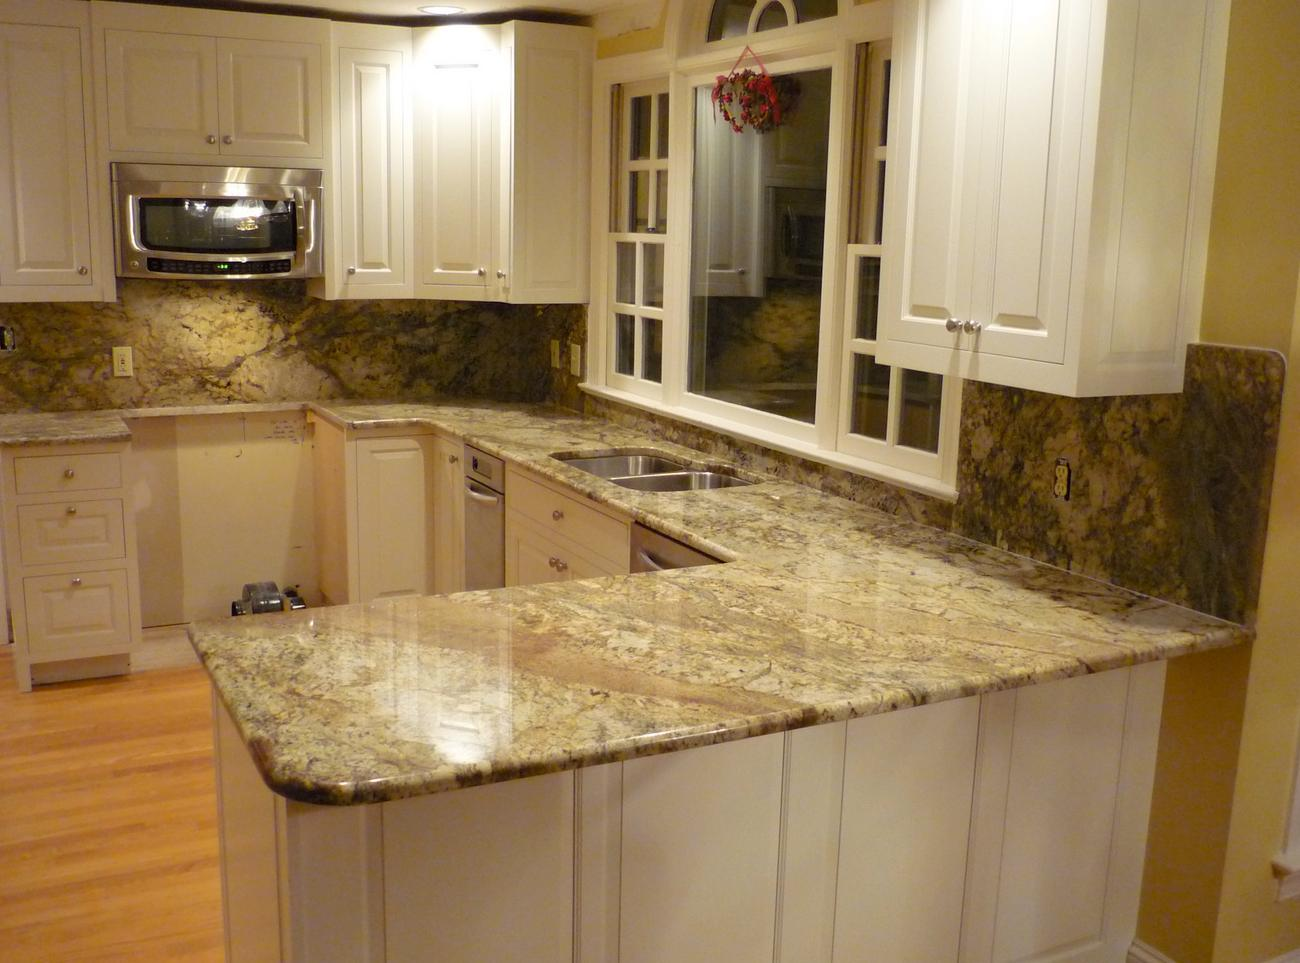 Kitchen Countertops Laminate : As Your Daily Routine May Involve These Steps In Your Kitchen